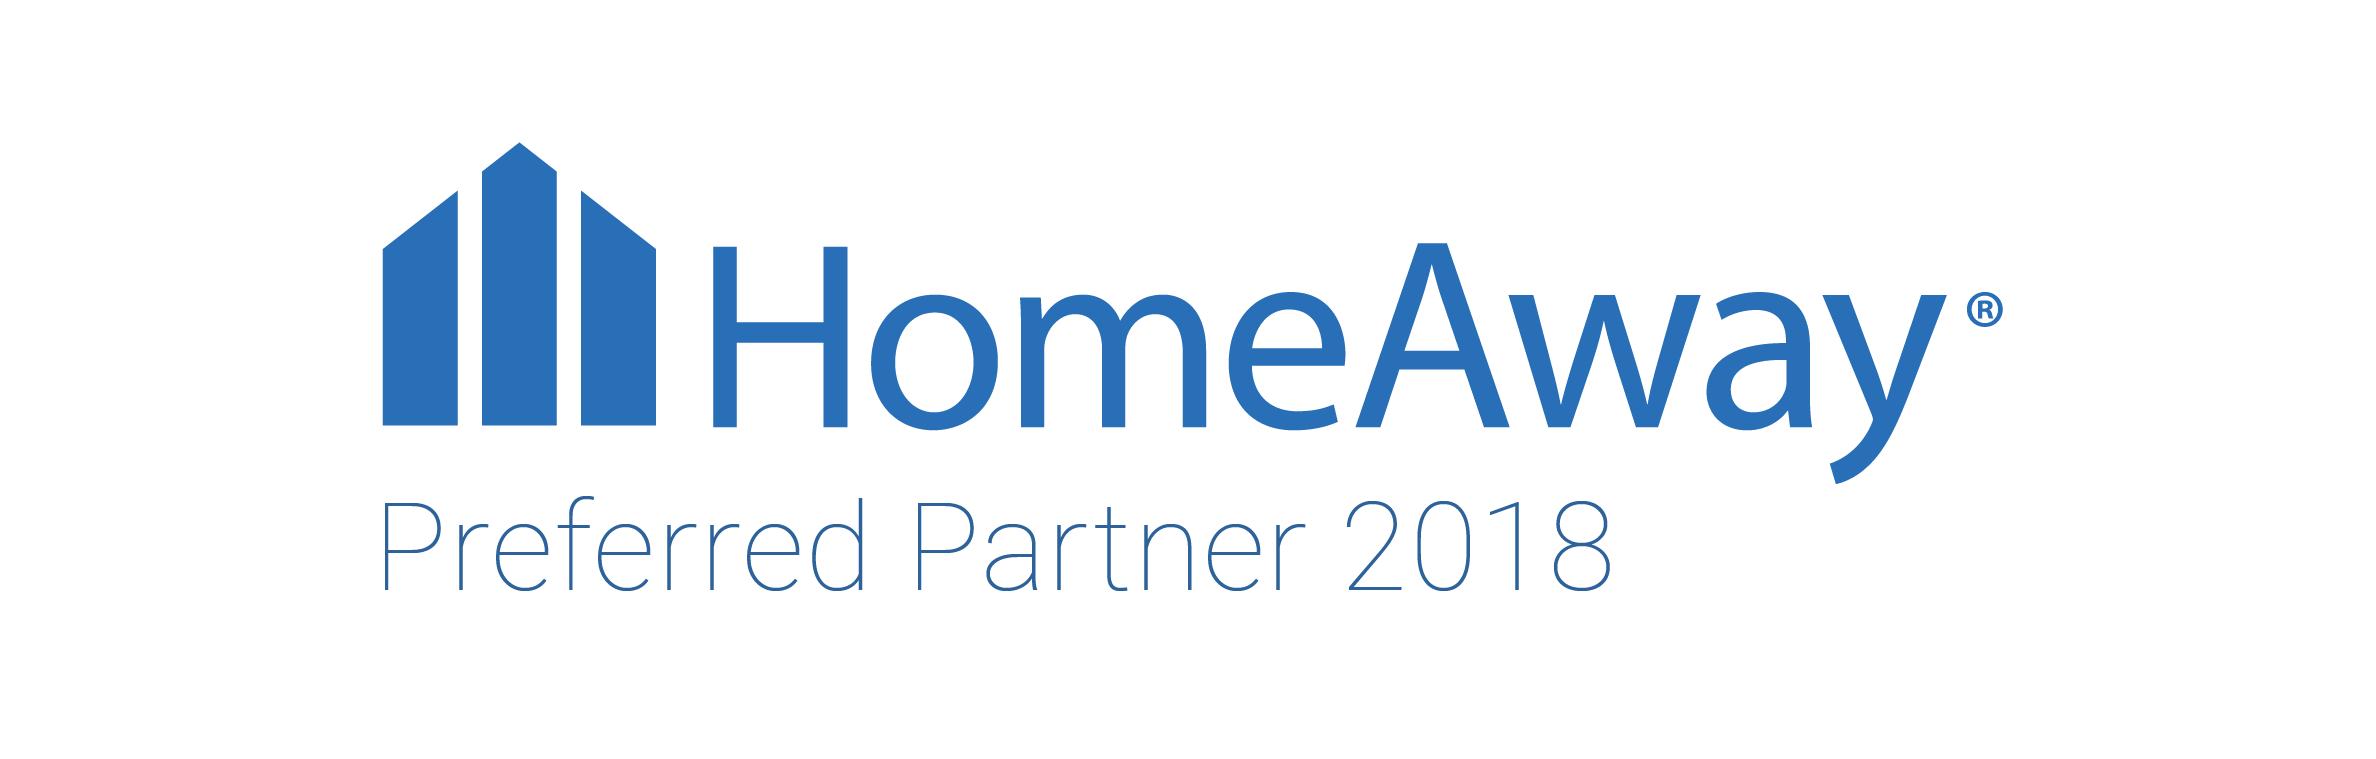 Homeaway preferred partner.